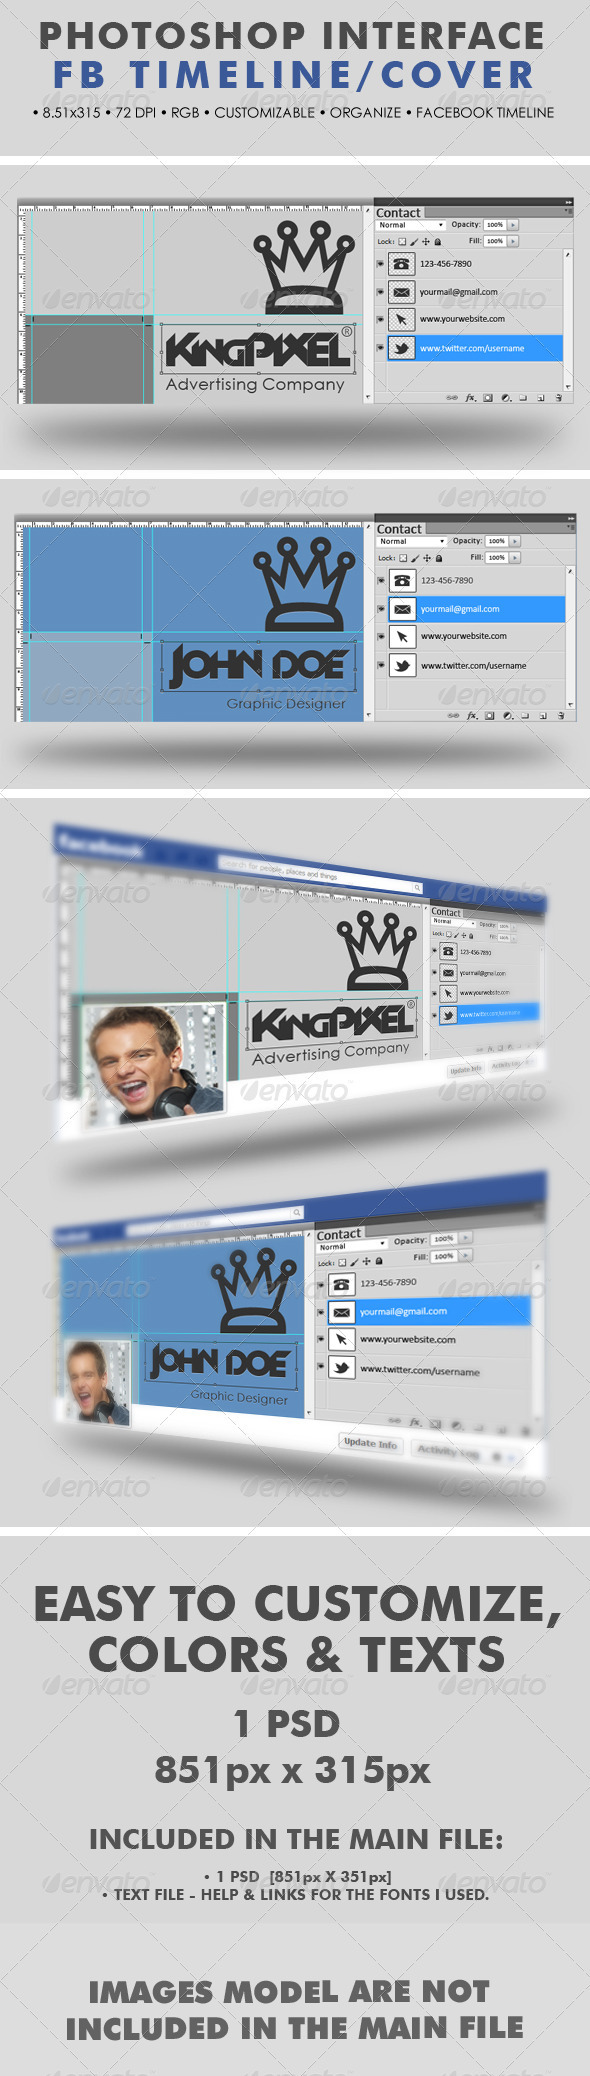 GraphicRiver Creative Photoshop Interface Timeline Cover 2583803